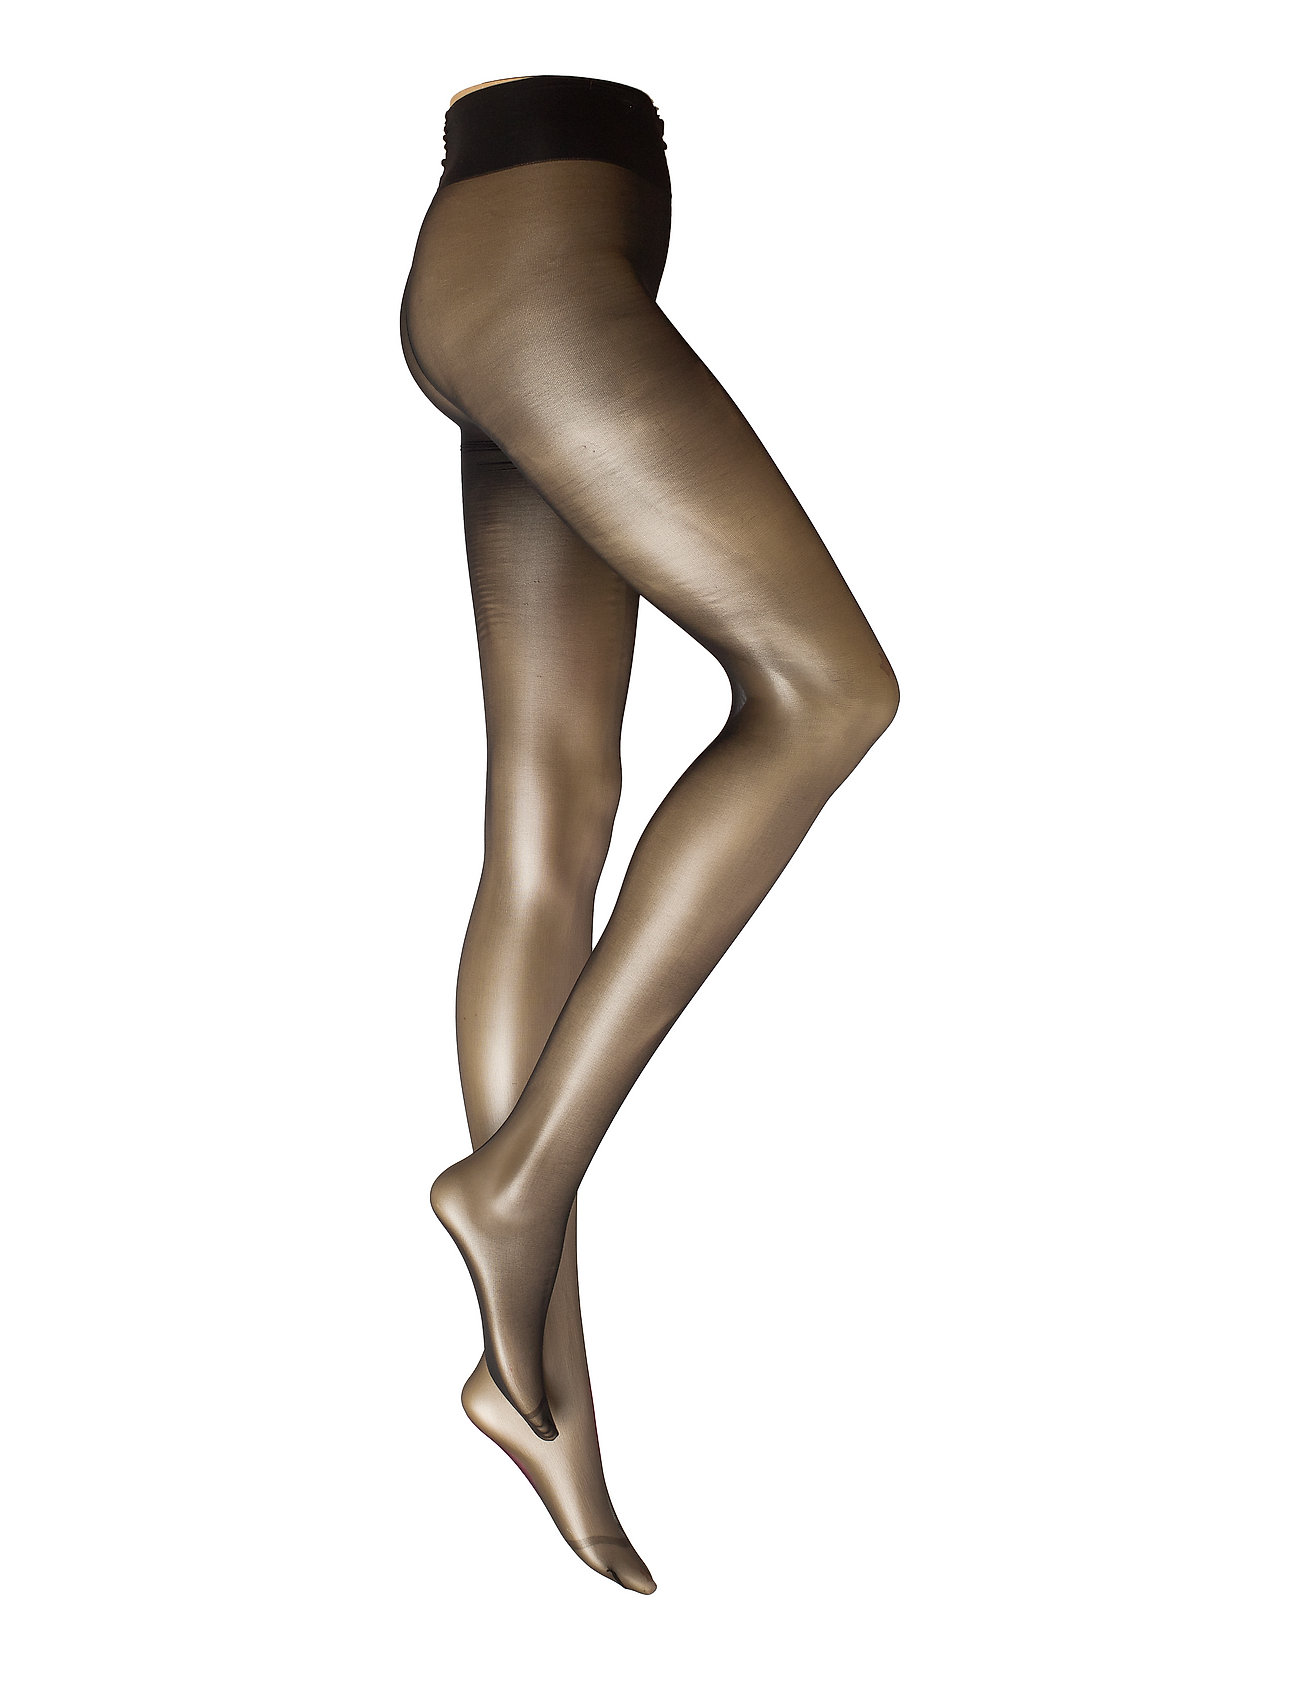 Decoy DECOY tights perfect fit 15 d - BLACK